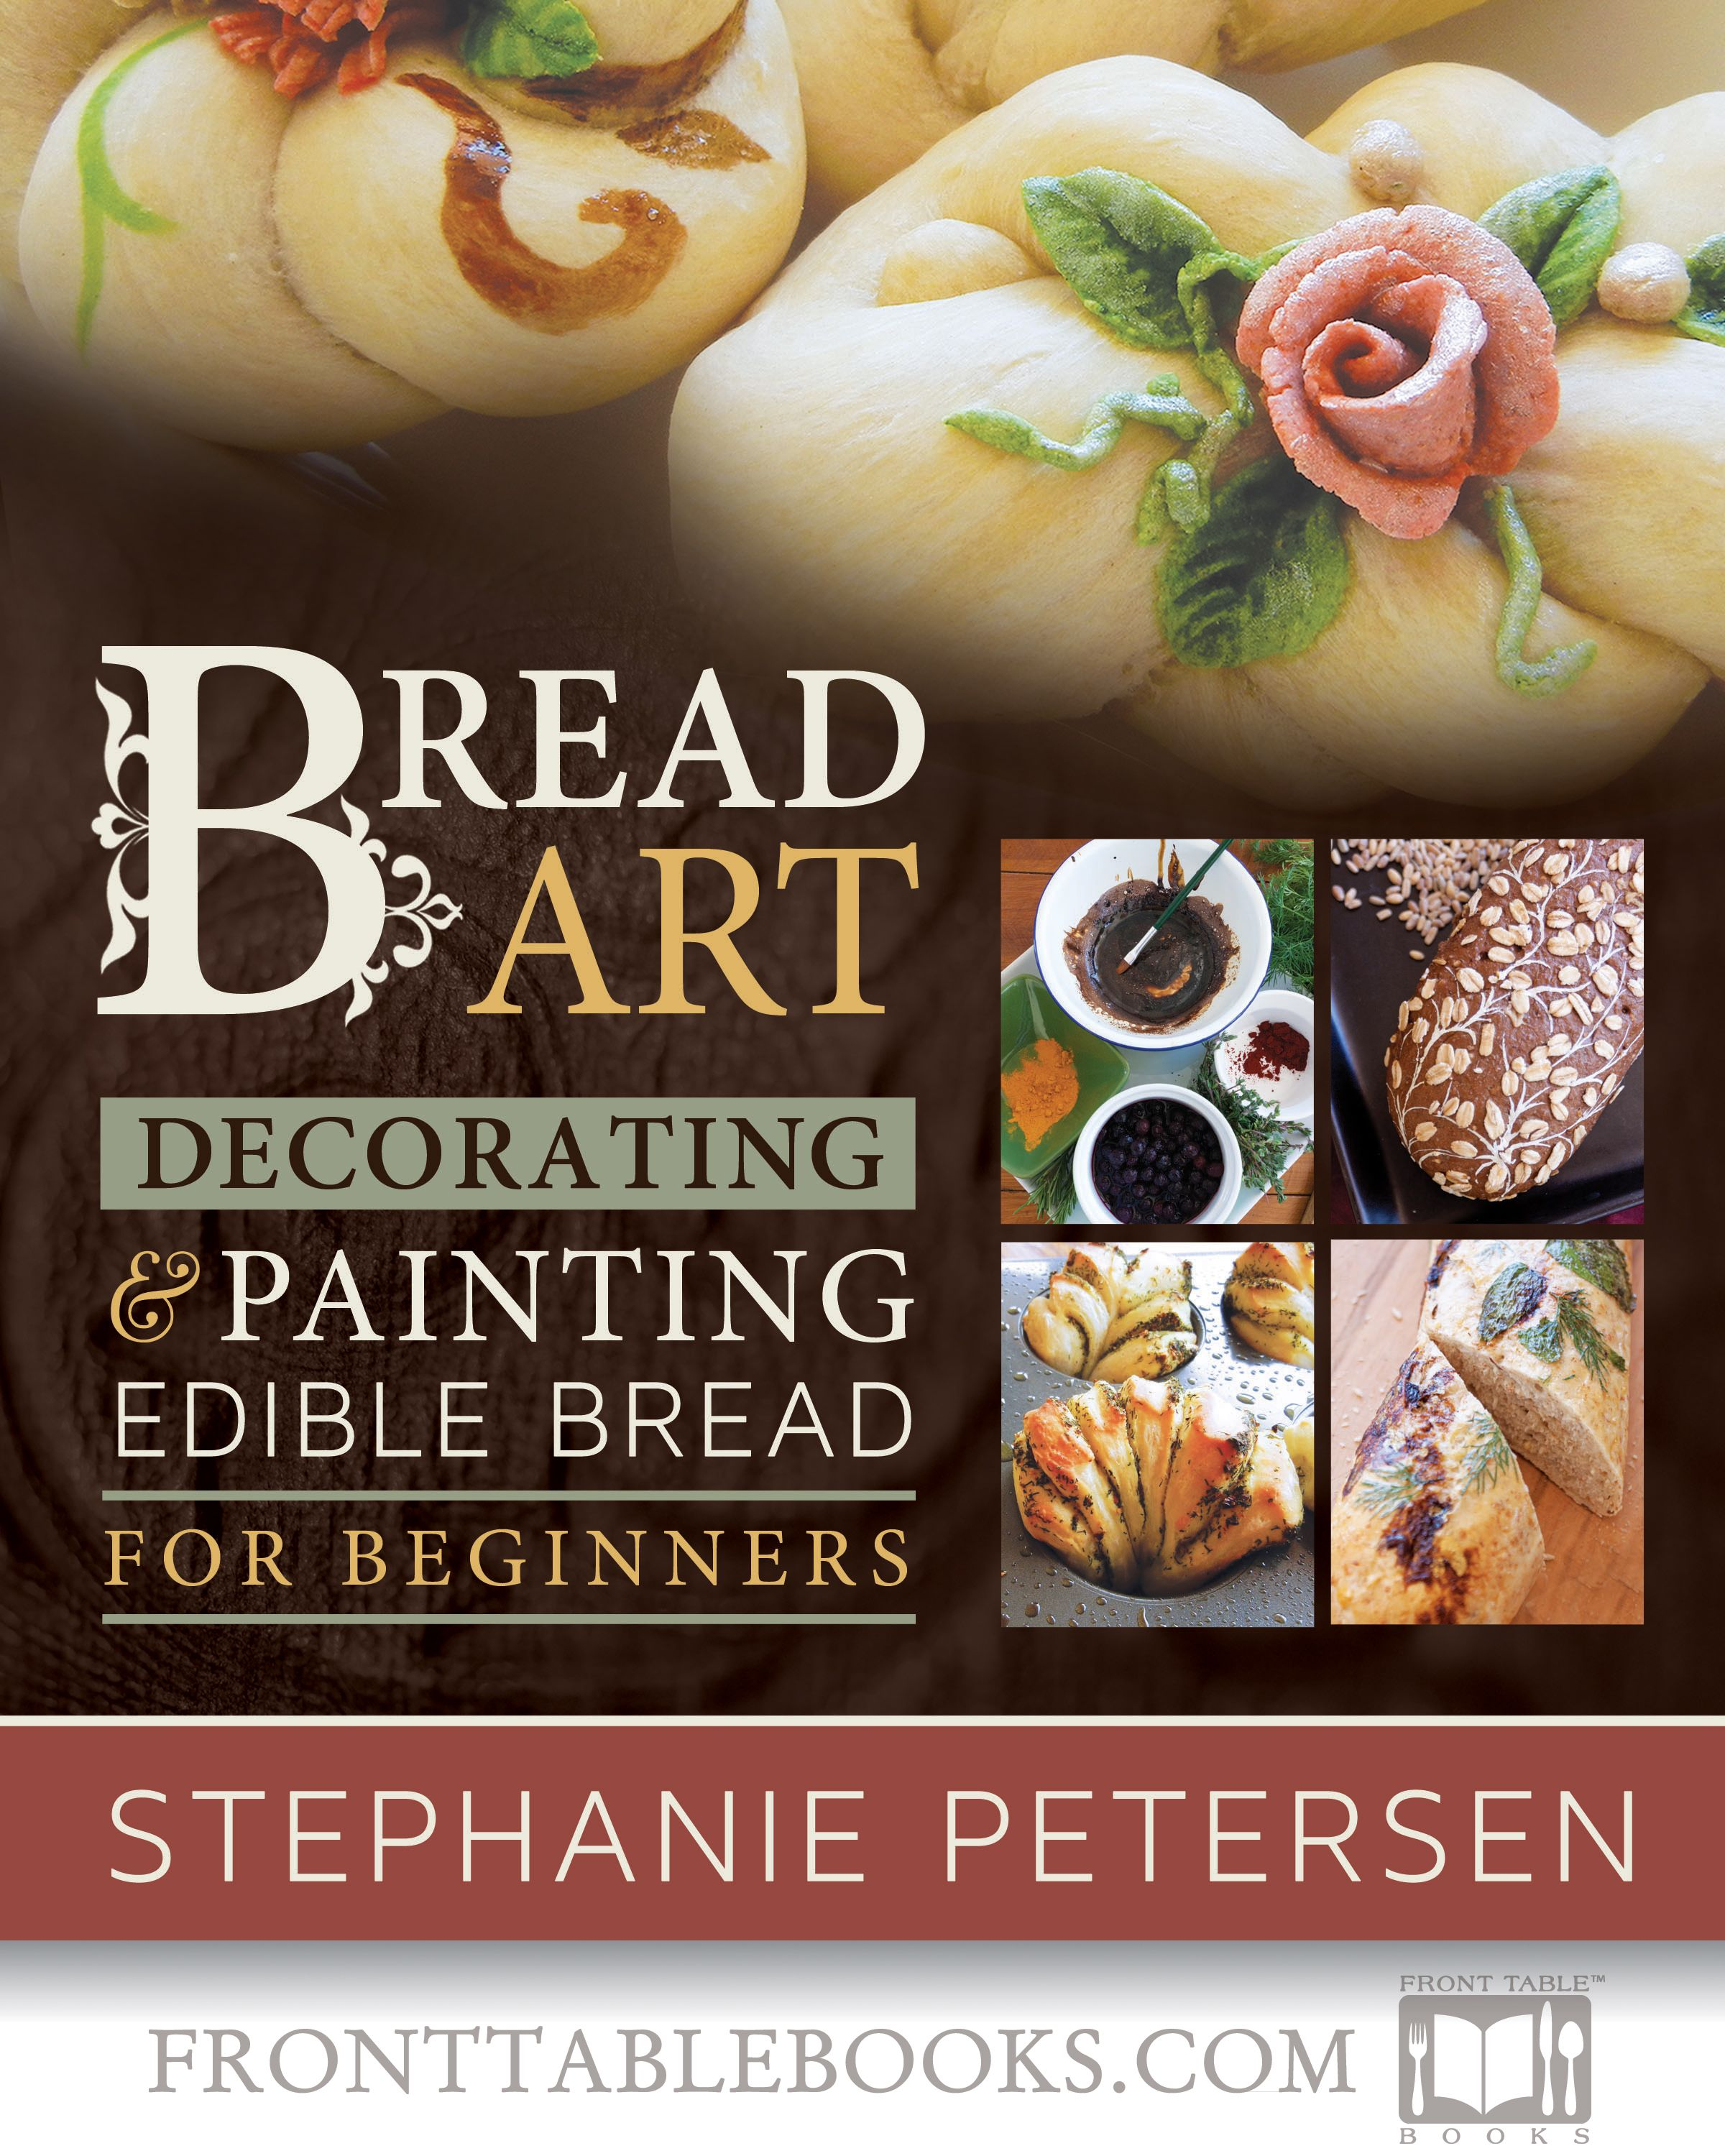 Bread Art: Braiding, Decorating, and Painting Edible Bread for Beginners (Buy: http://4rt.cc/breadart_140611) Art that you can eat! With Bread Art's beautiful, step-by-step photos and delectable recipes, you'll be braiding, painting, and embellishing your own masterpieces in no time!